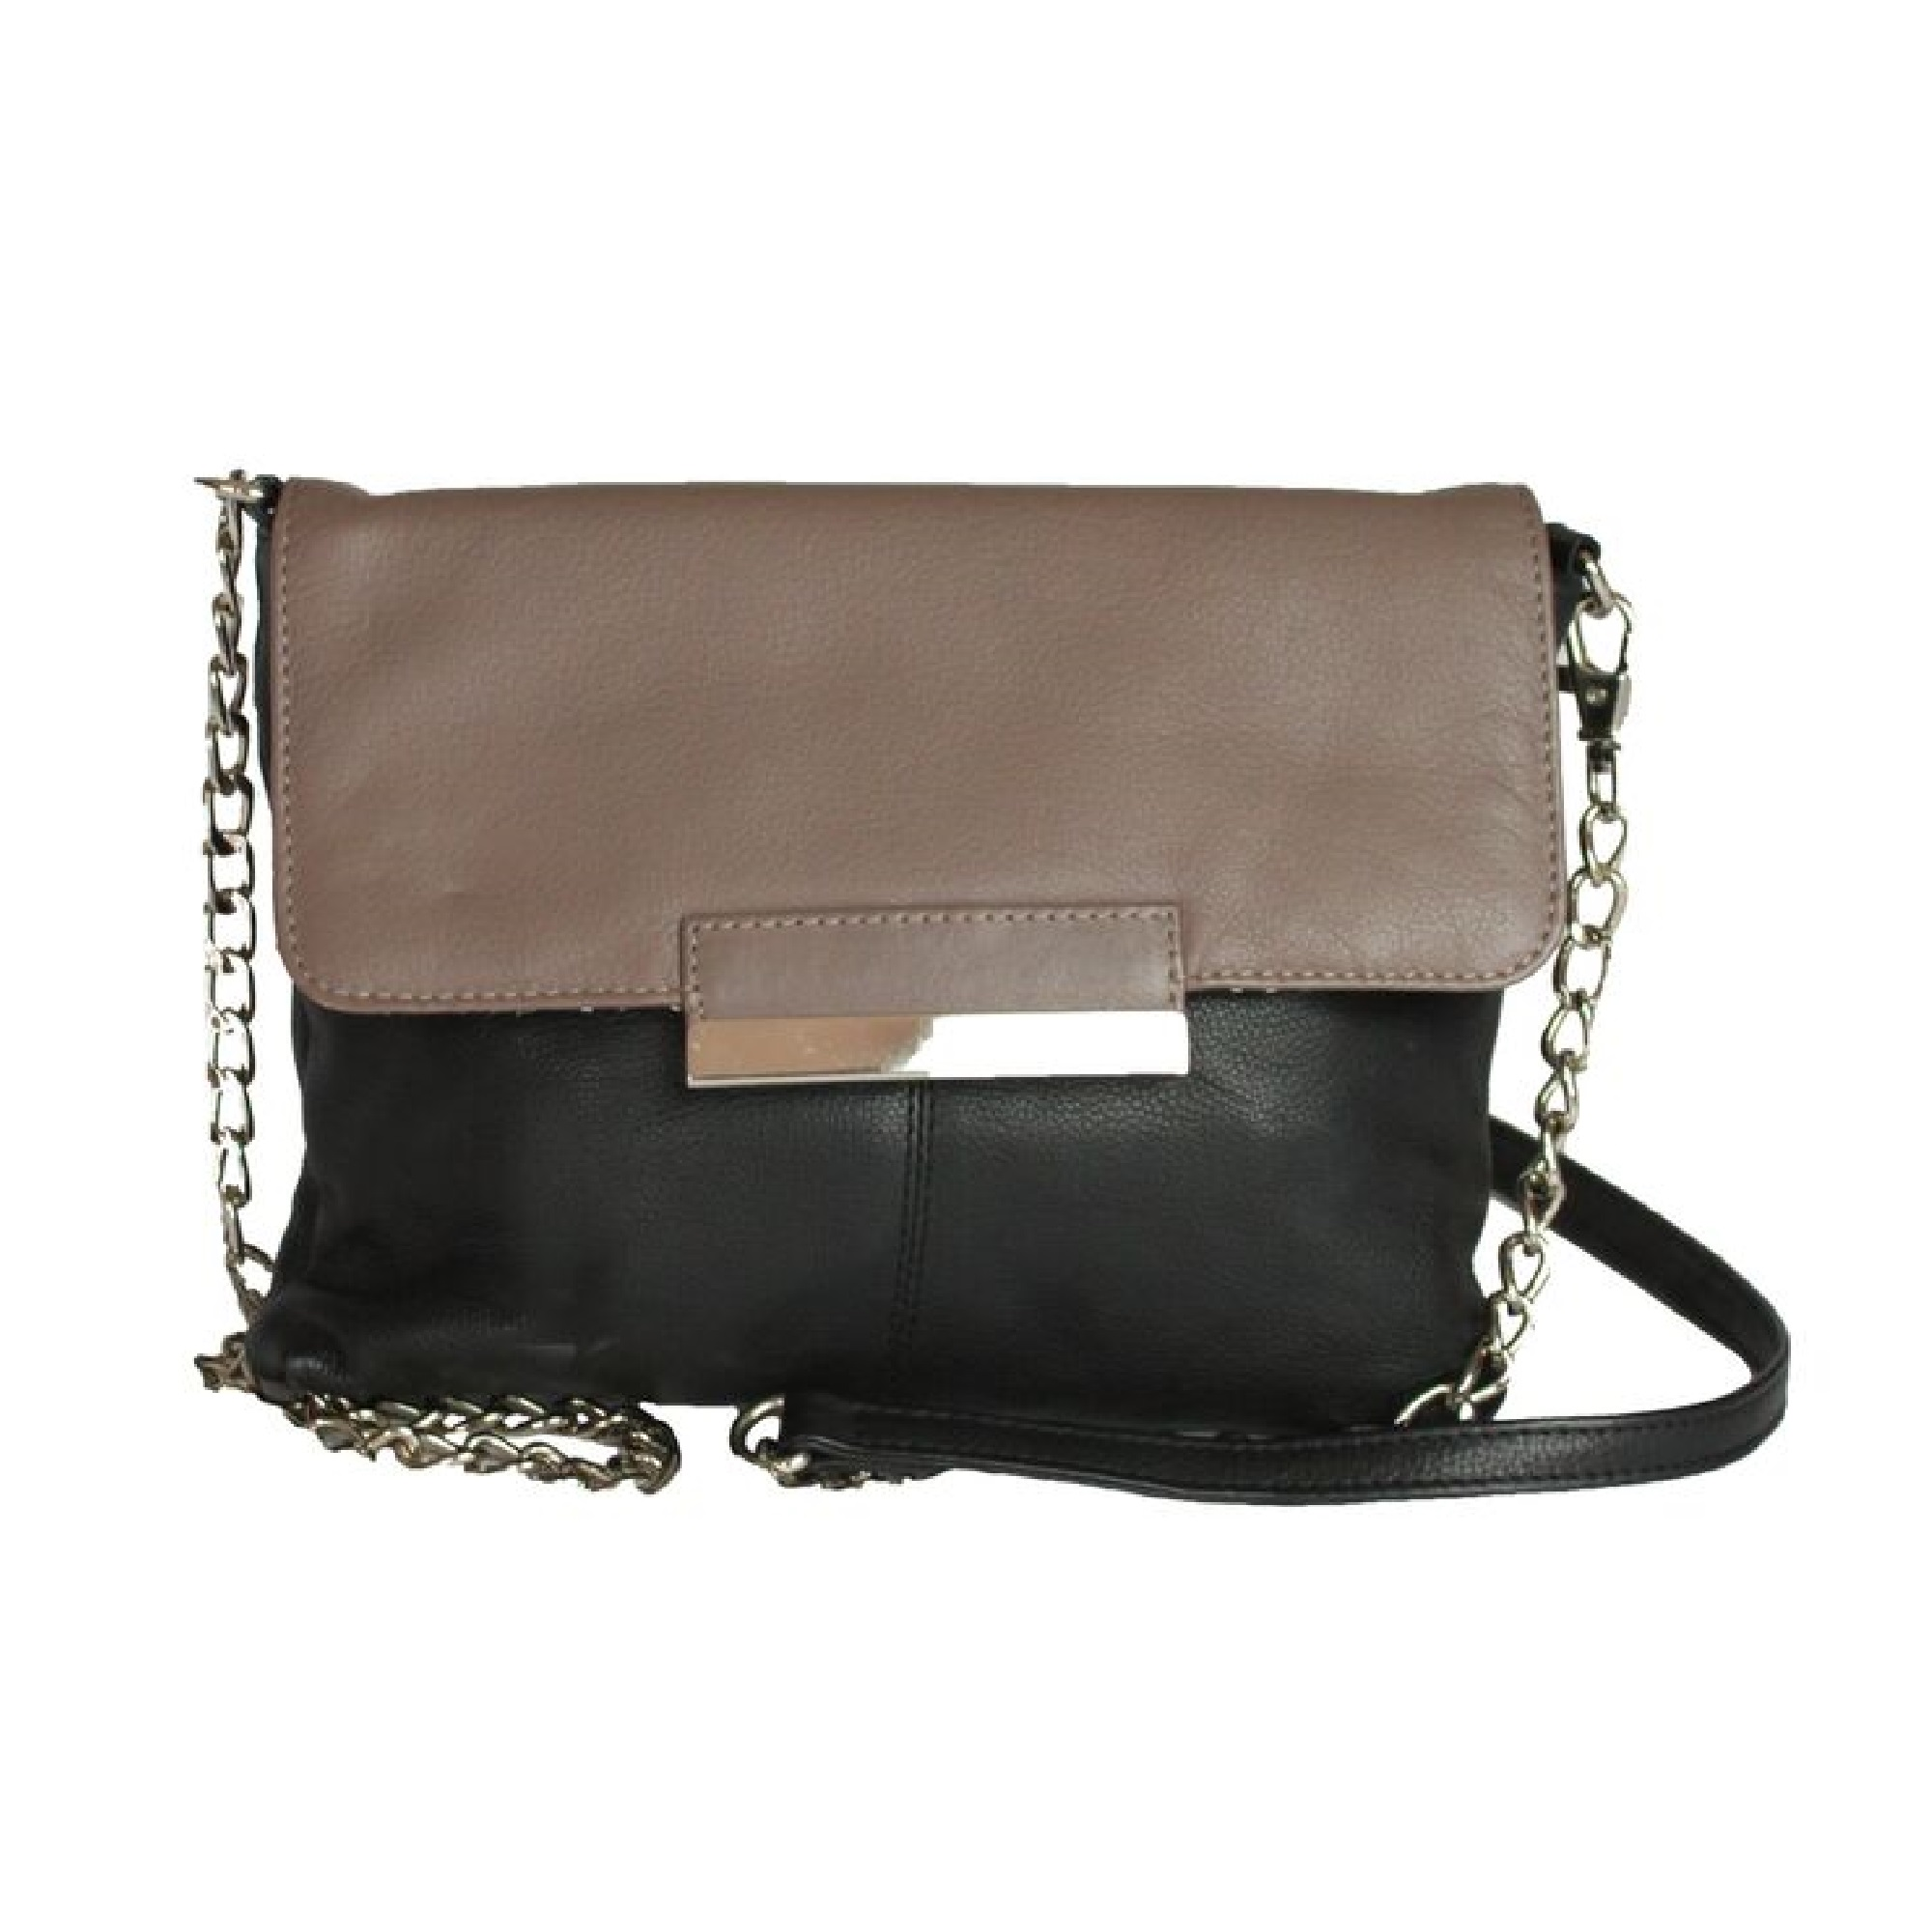 Eastern Counties Leather Womens/Ladies Carys Chain Strap Handbag (One size) (Black/Taupe)